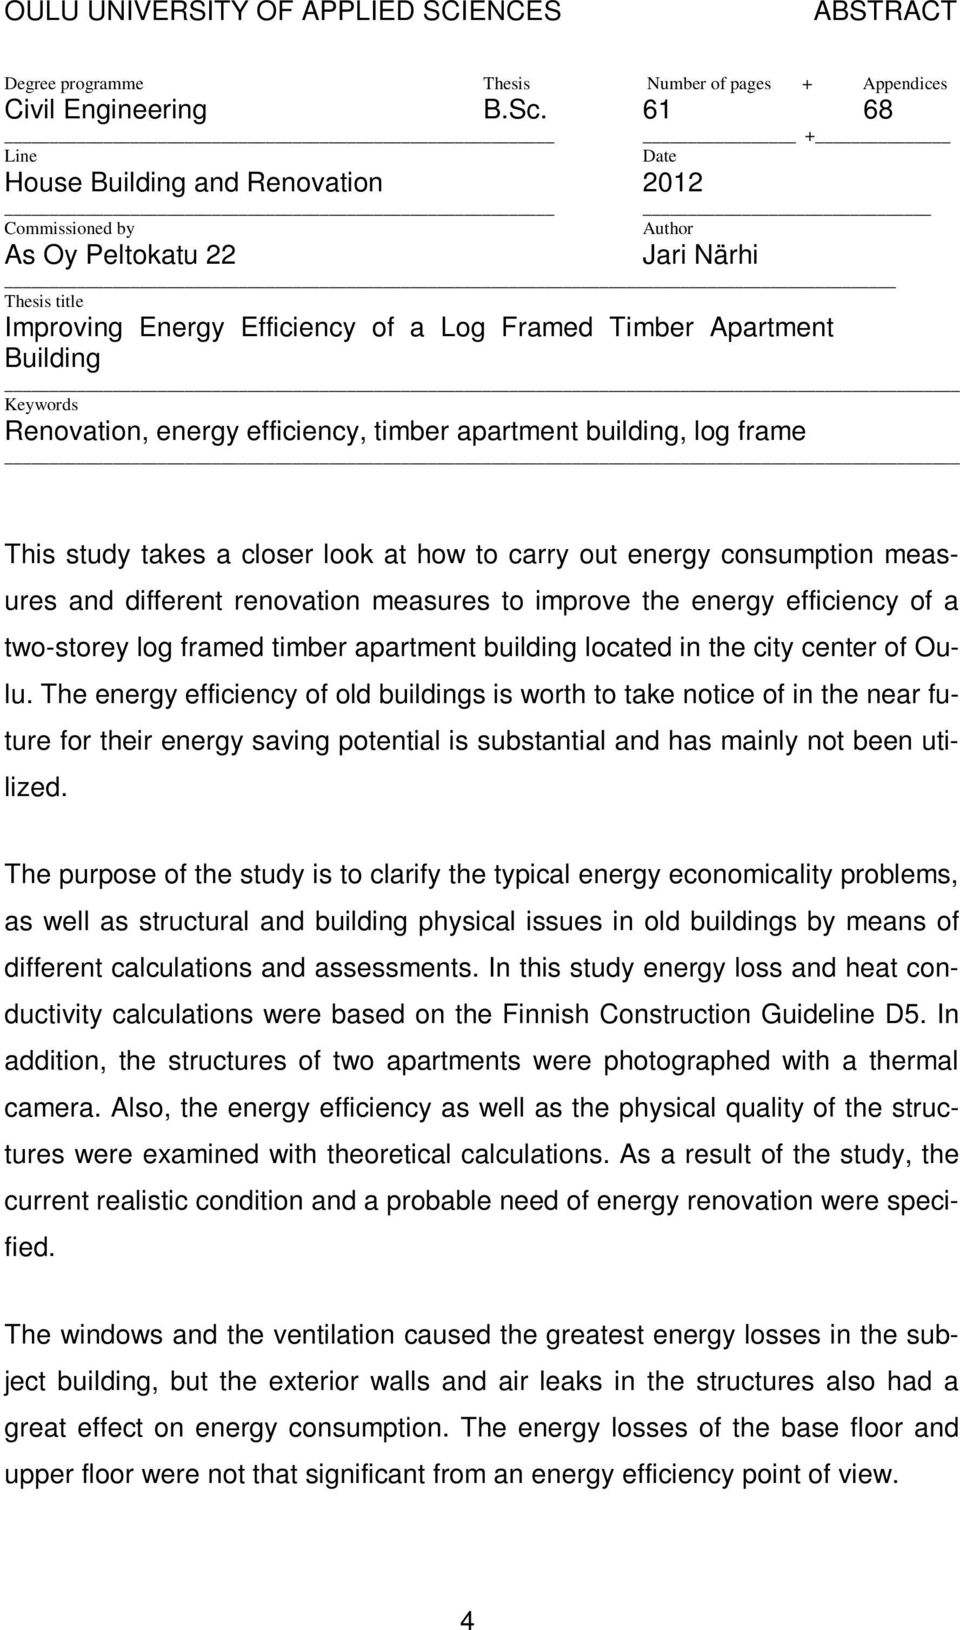 Renovation, energy efficiency, timber apartment building, log frame This study takes a closer look at how to carry out energy consumption measures and different renovation measures to improve the